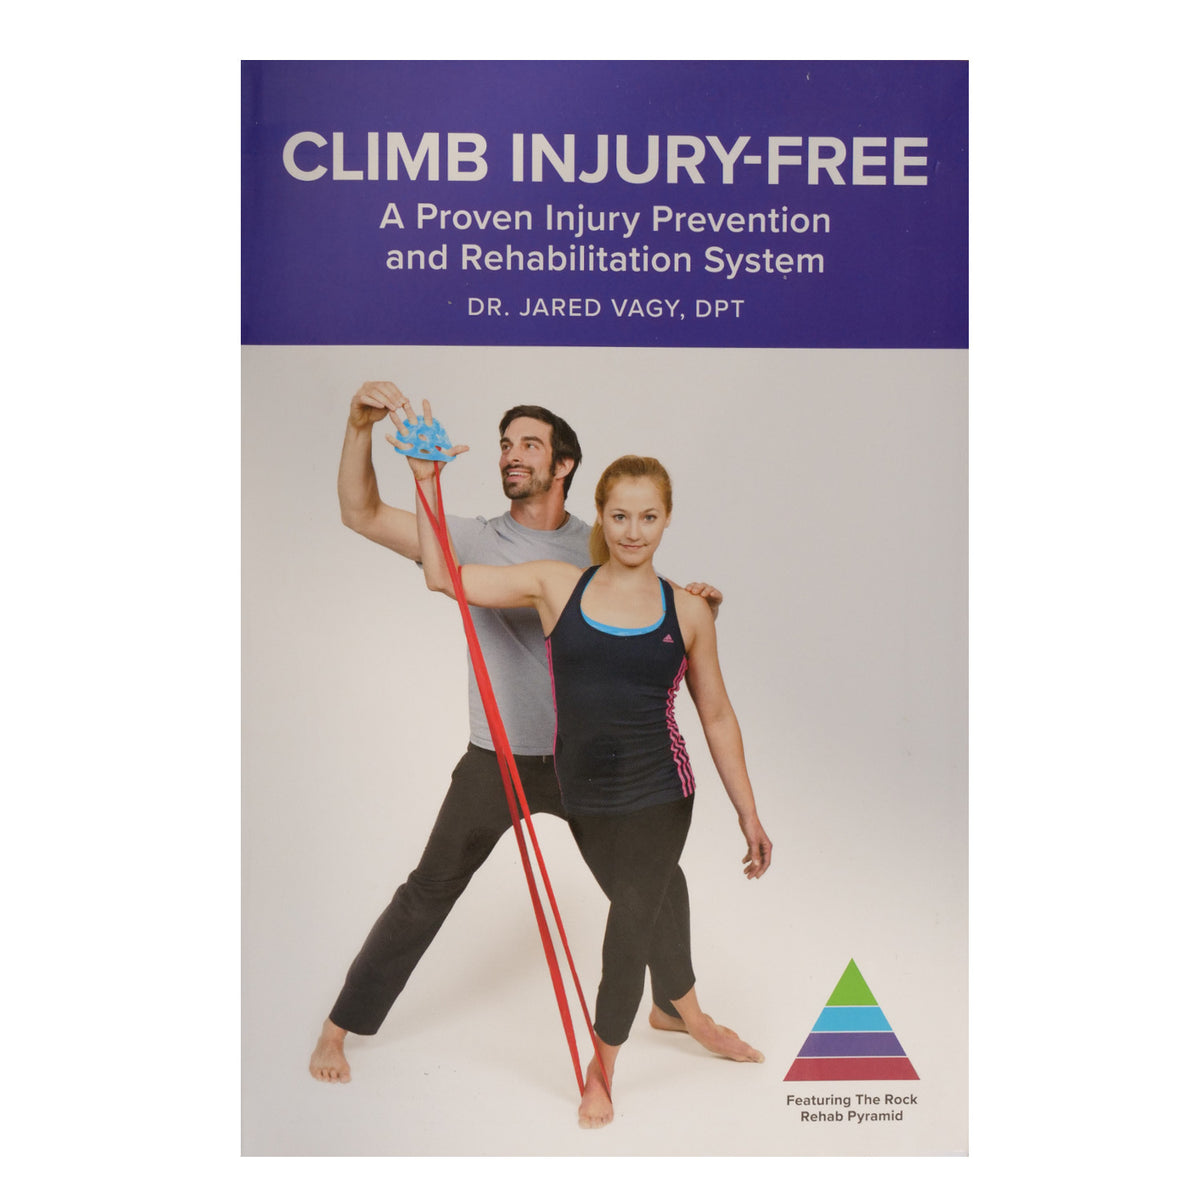 Climb Injury Free book, front cover